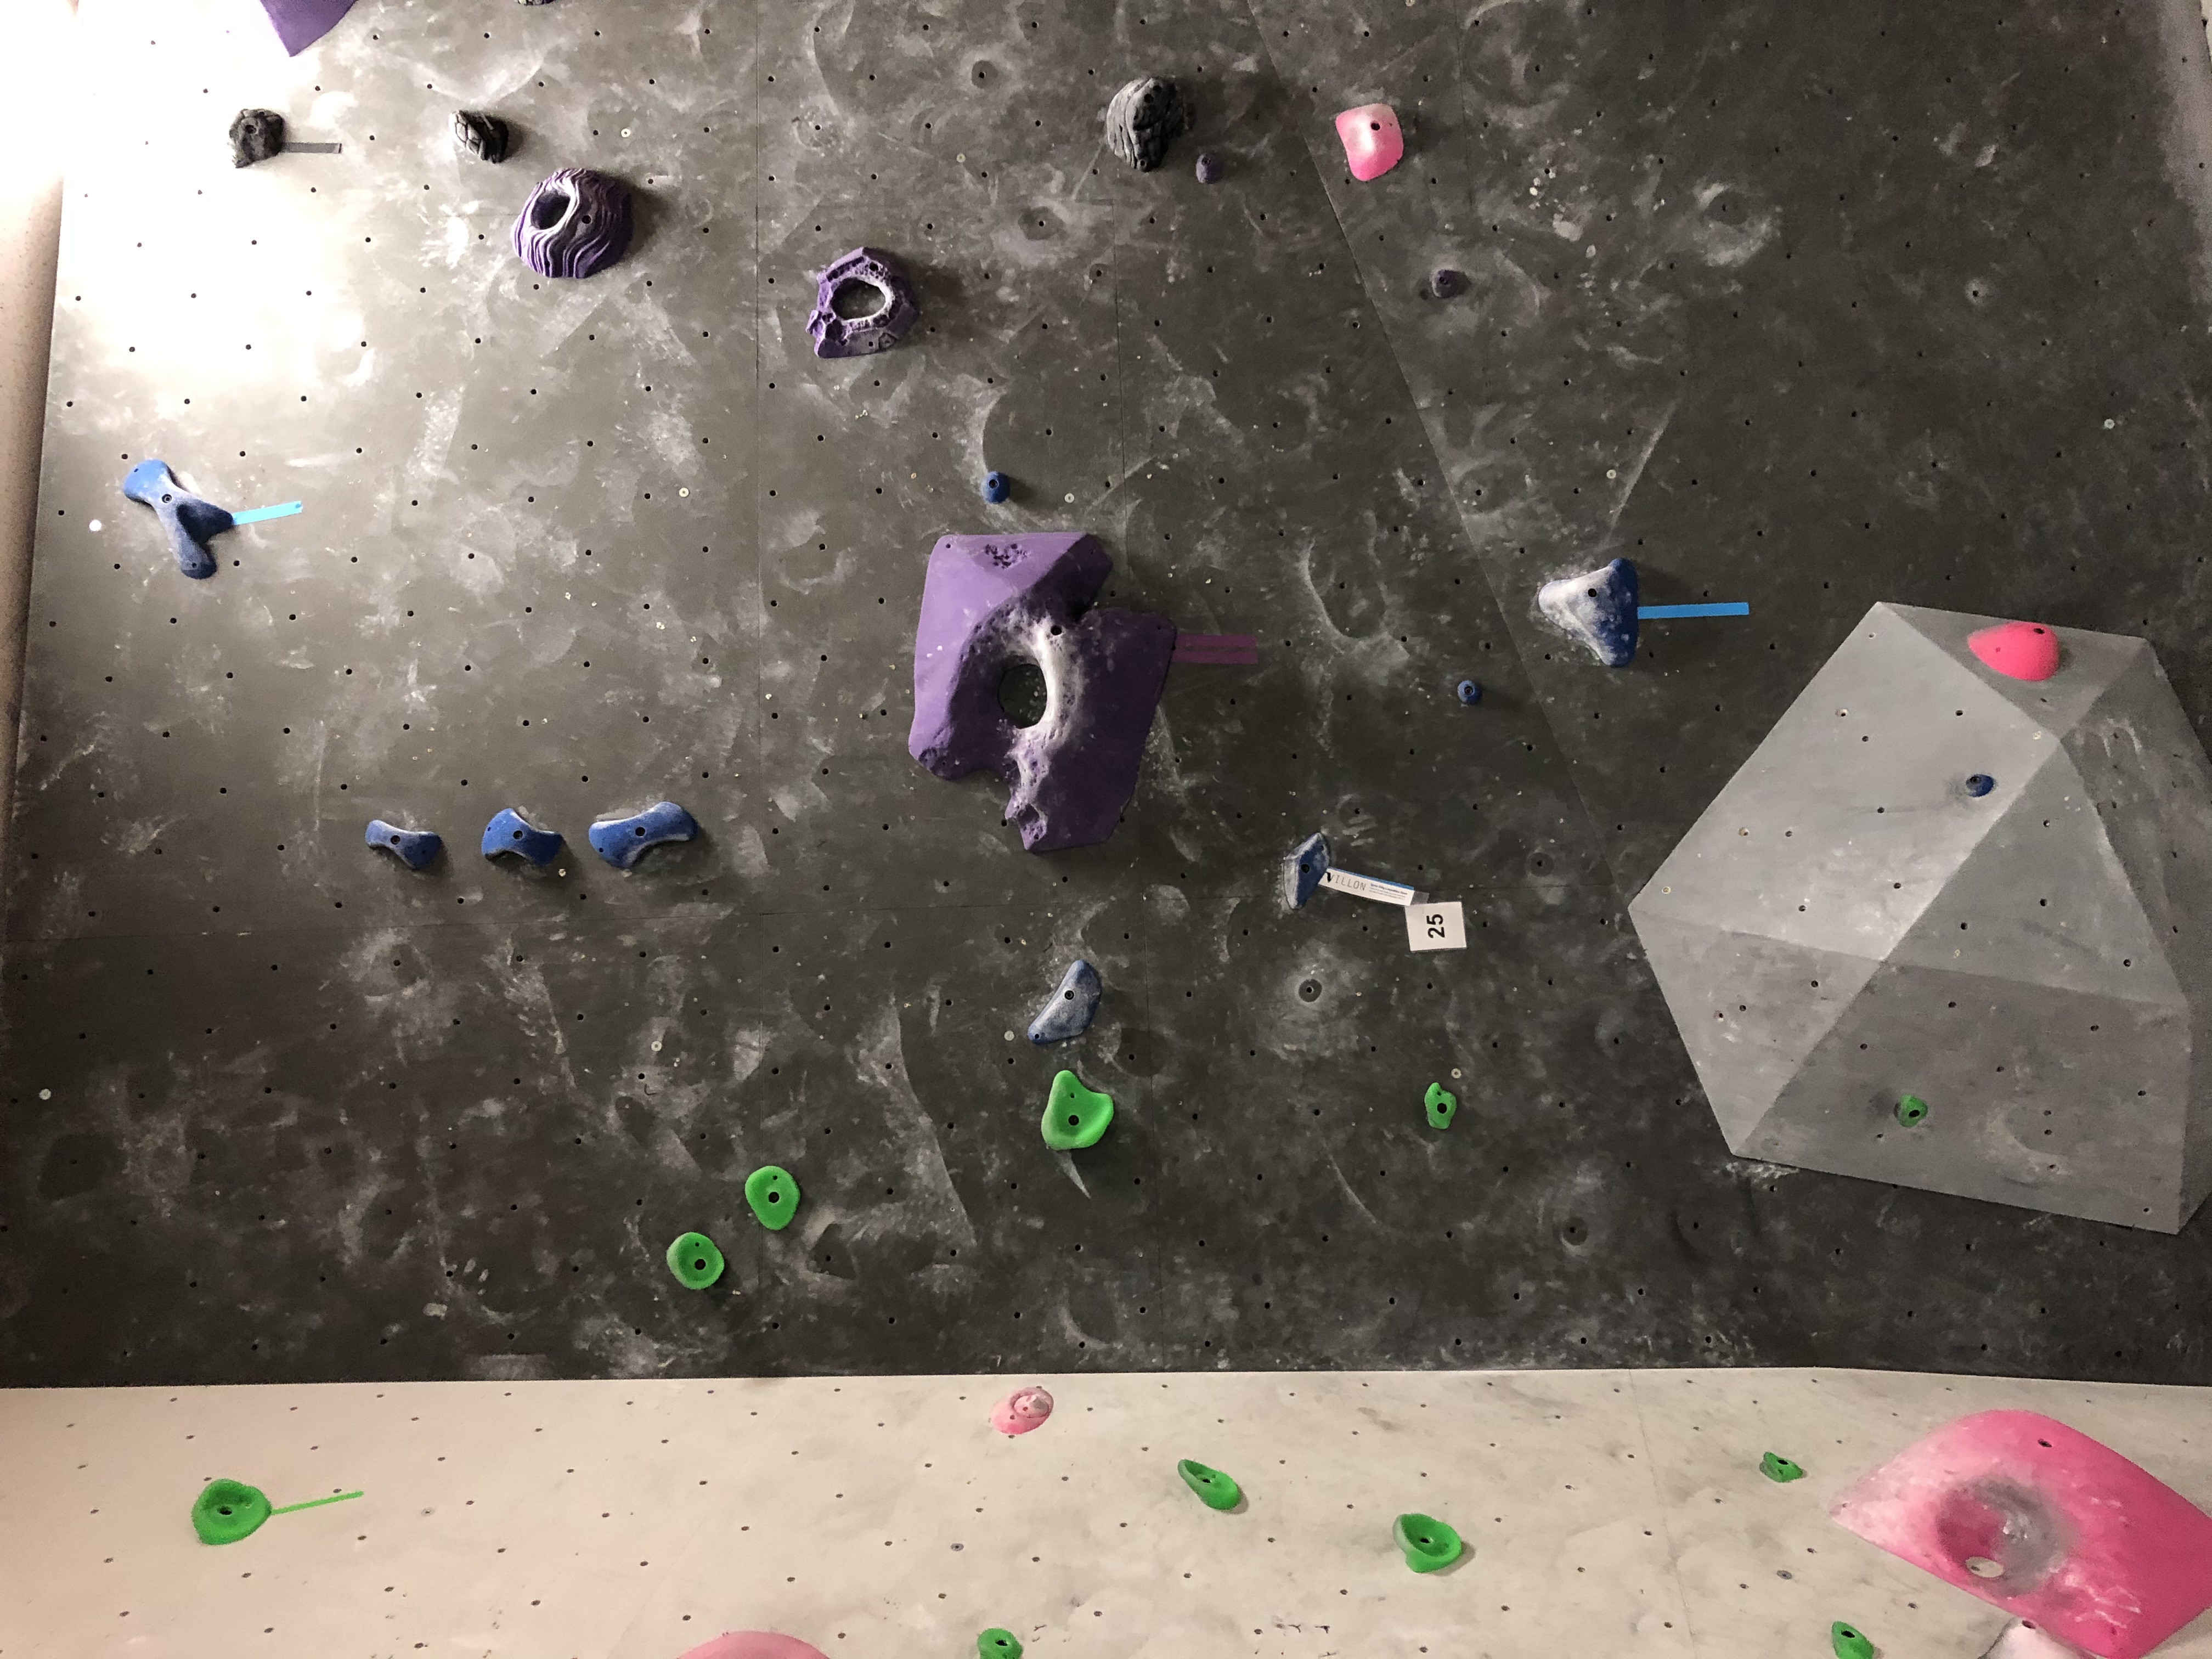 Locals only route 25, a blue pinch ascent with a squat start